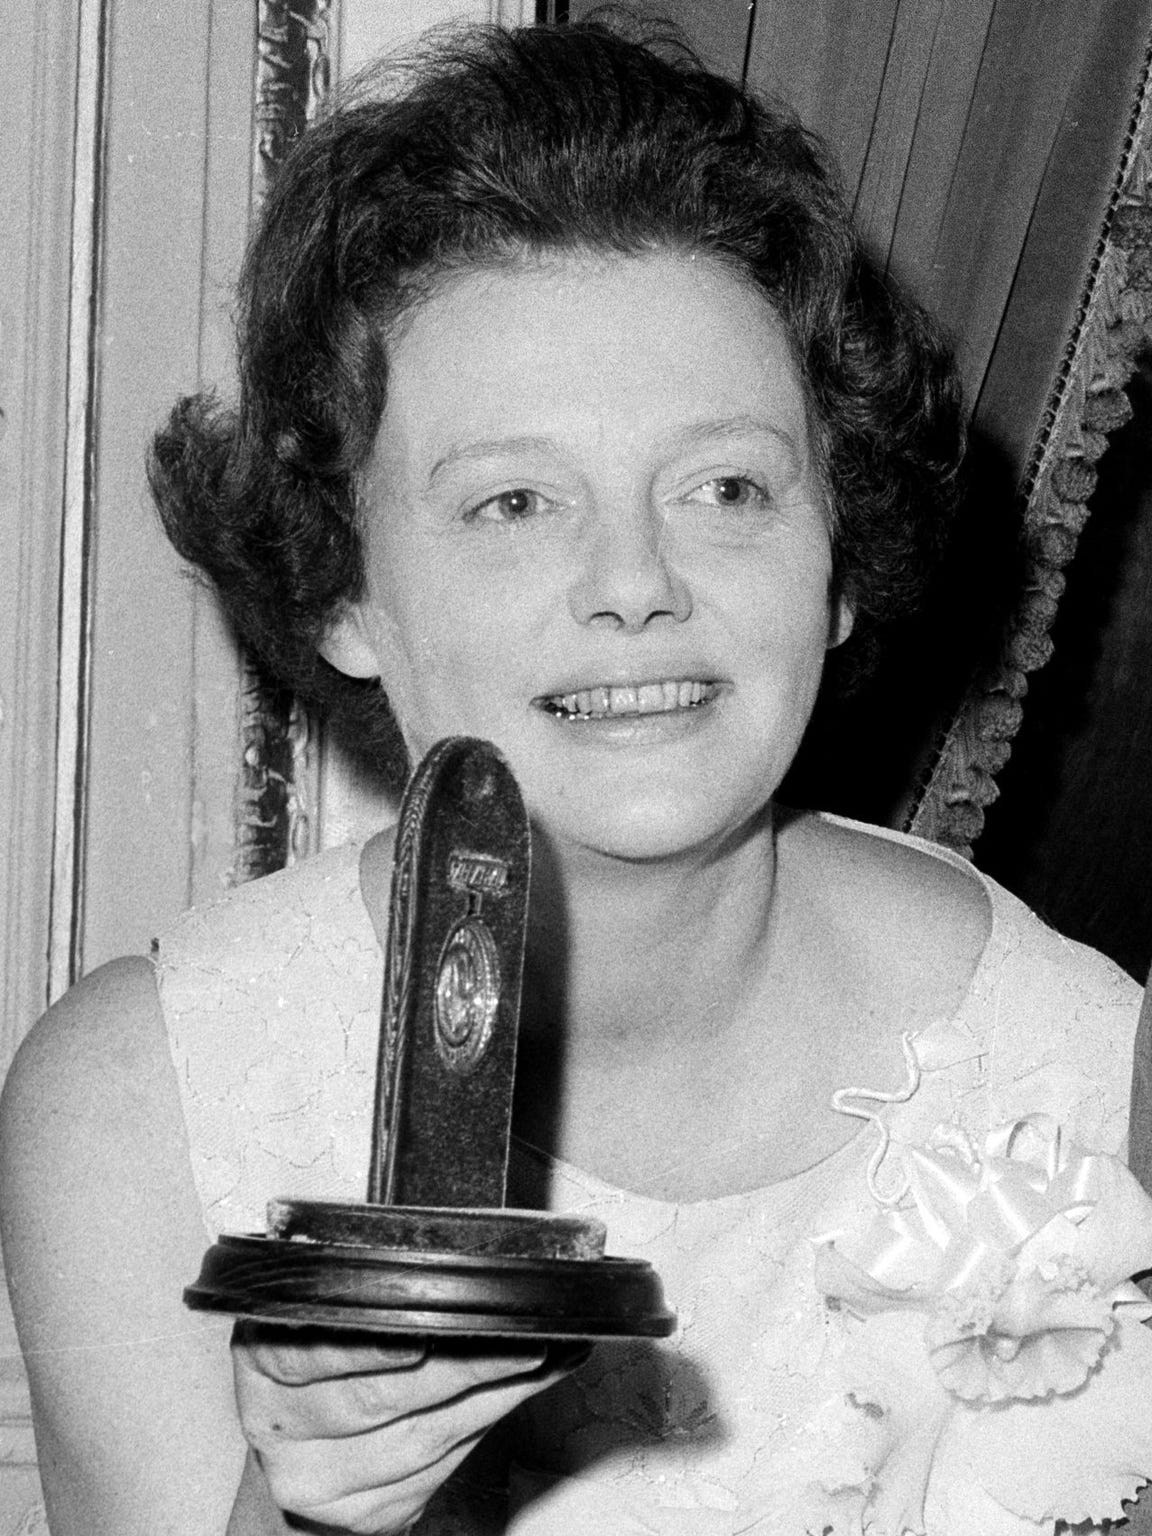 Jean Kerr, a playwright and author who wrote with self-deprecating